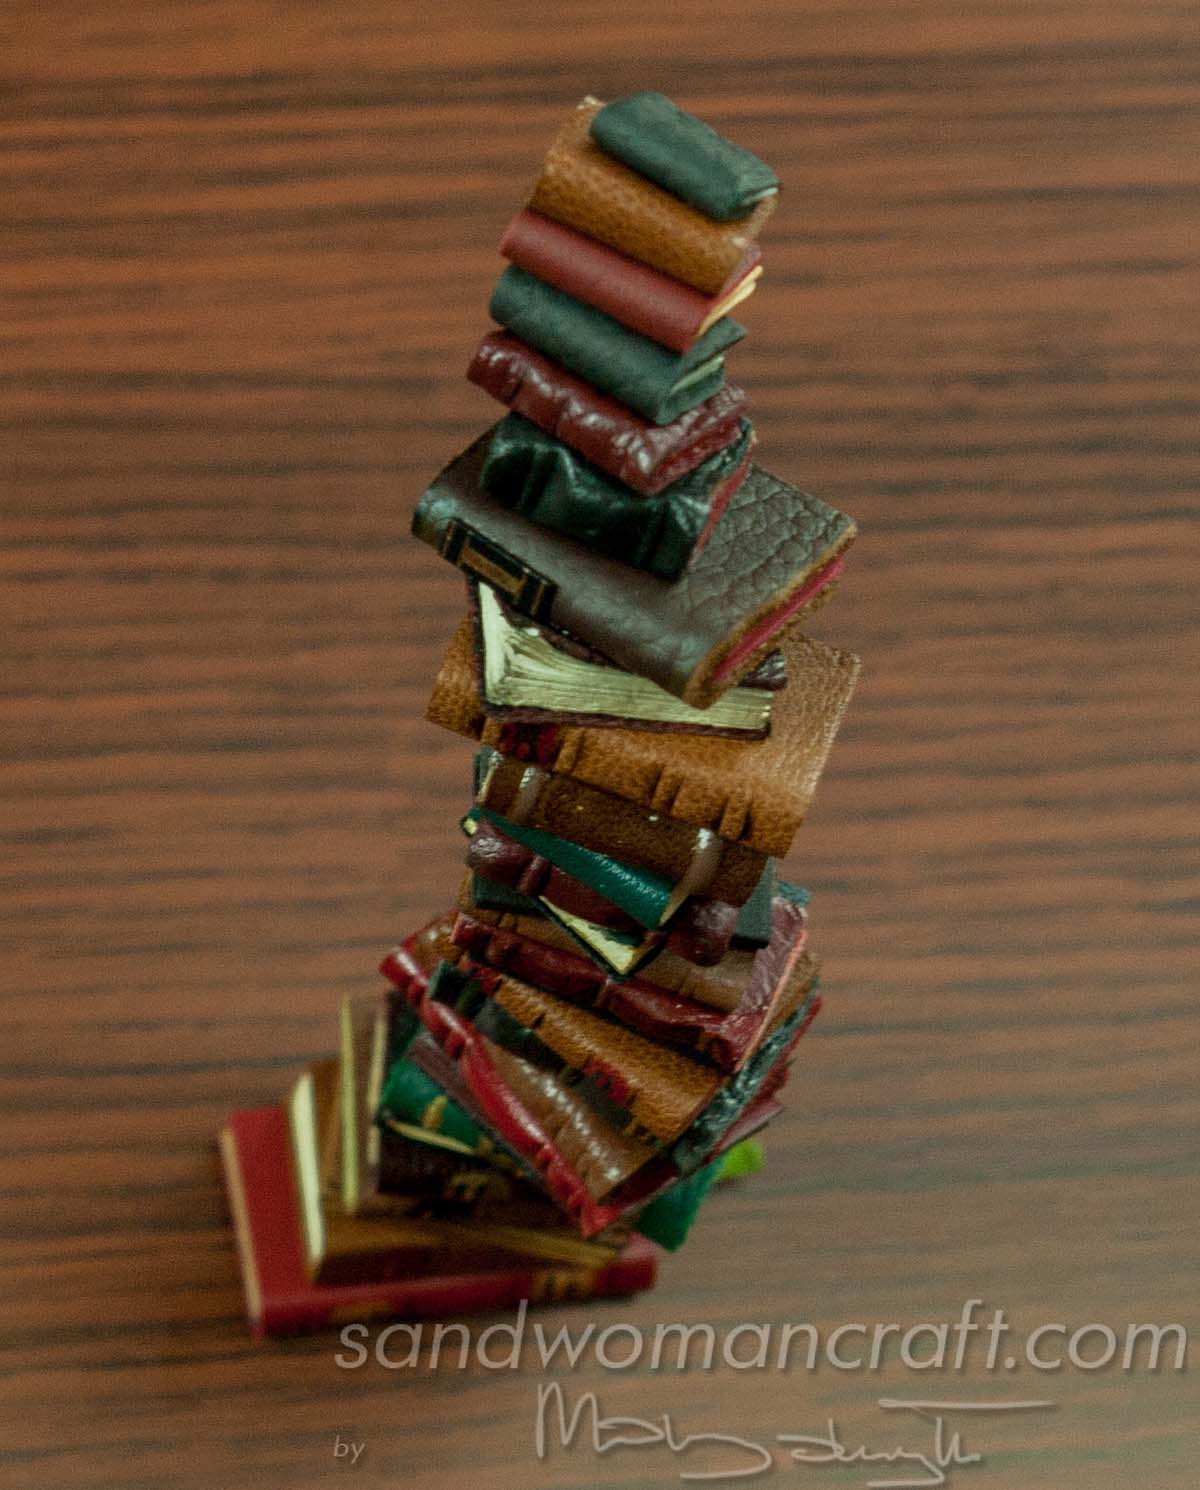 Pile/ stack/ set of 30 miniature leather books  in 1:12 scale. Library, wizard, witch, magic setting.